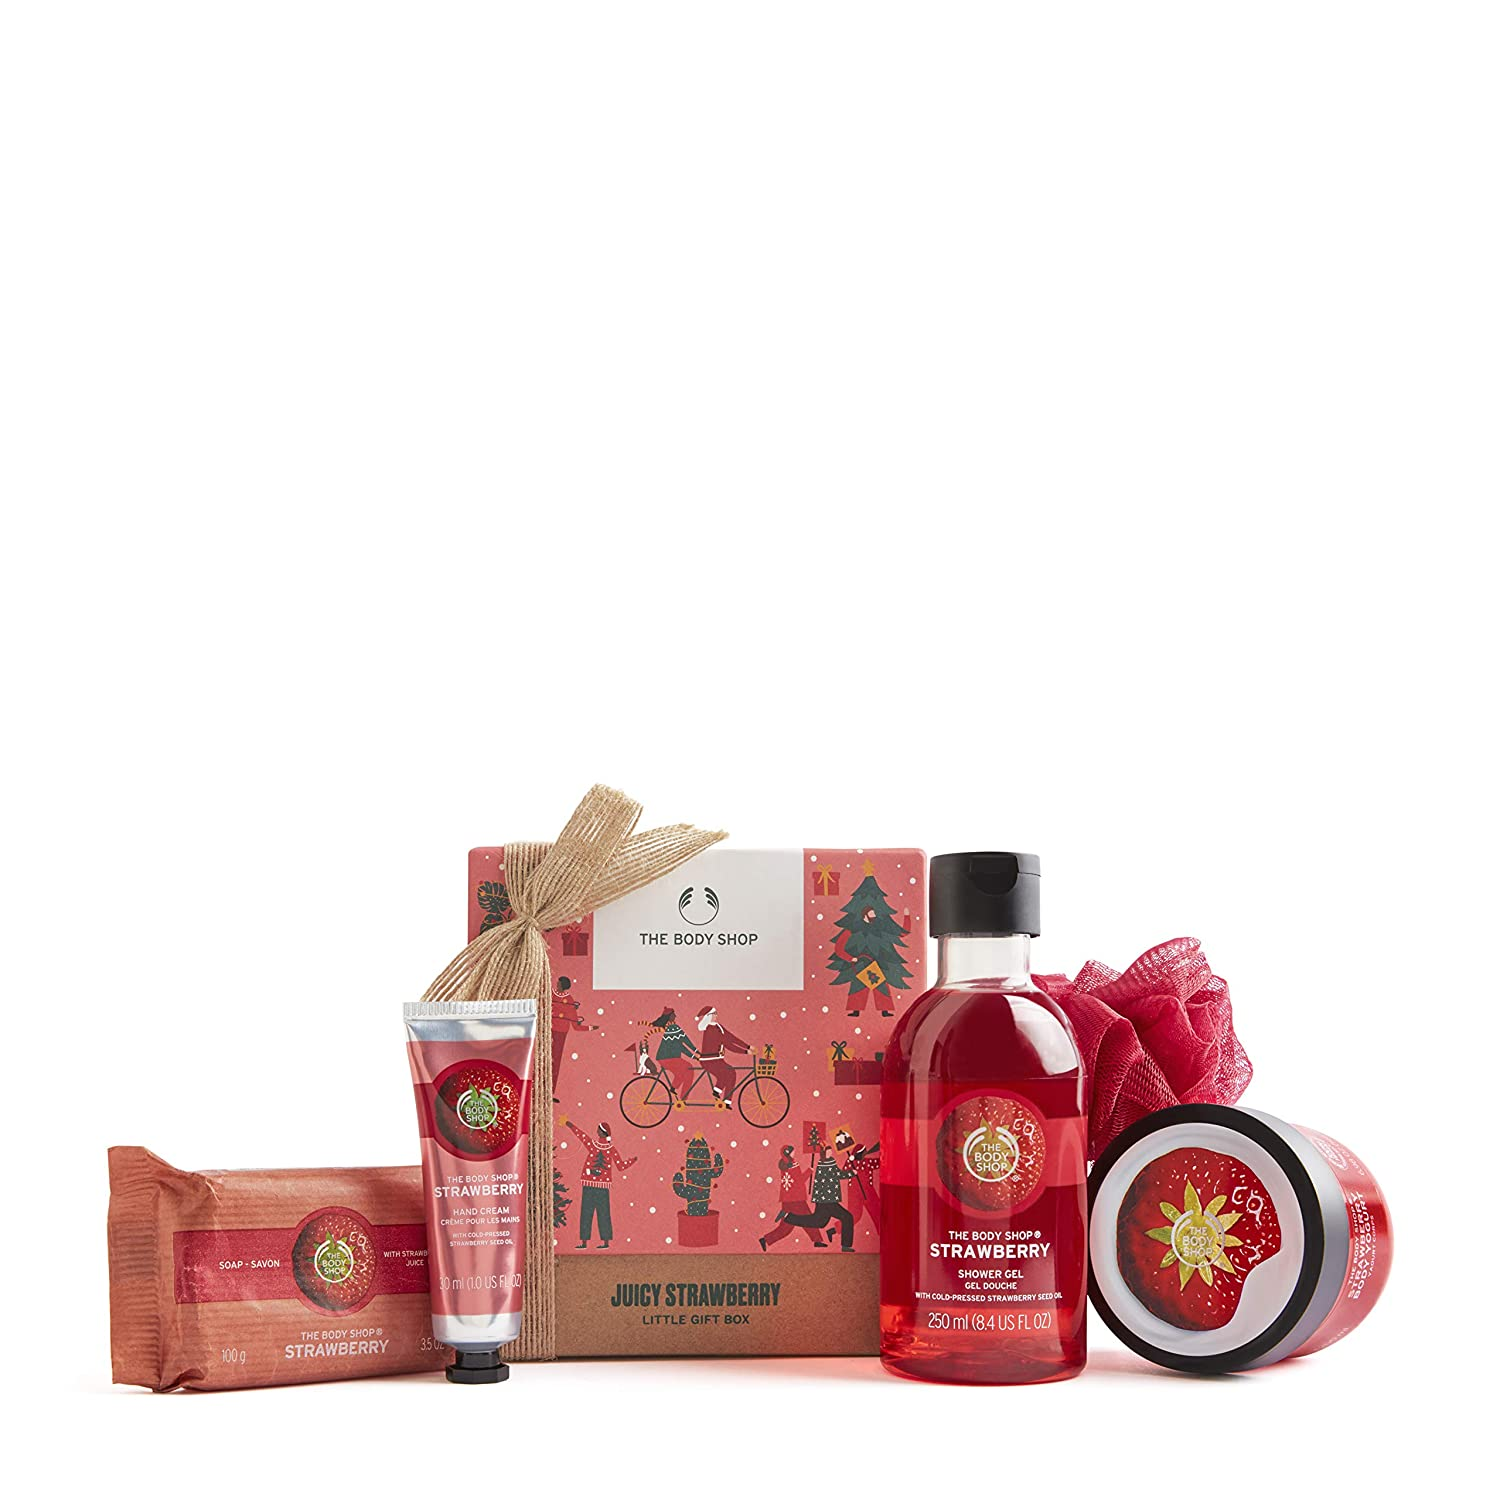 The Body Shop Strawberry-5pc Small Gift care juice body Set Max 43% Limited time trial price OFF with